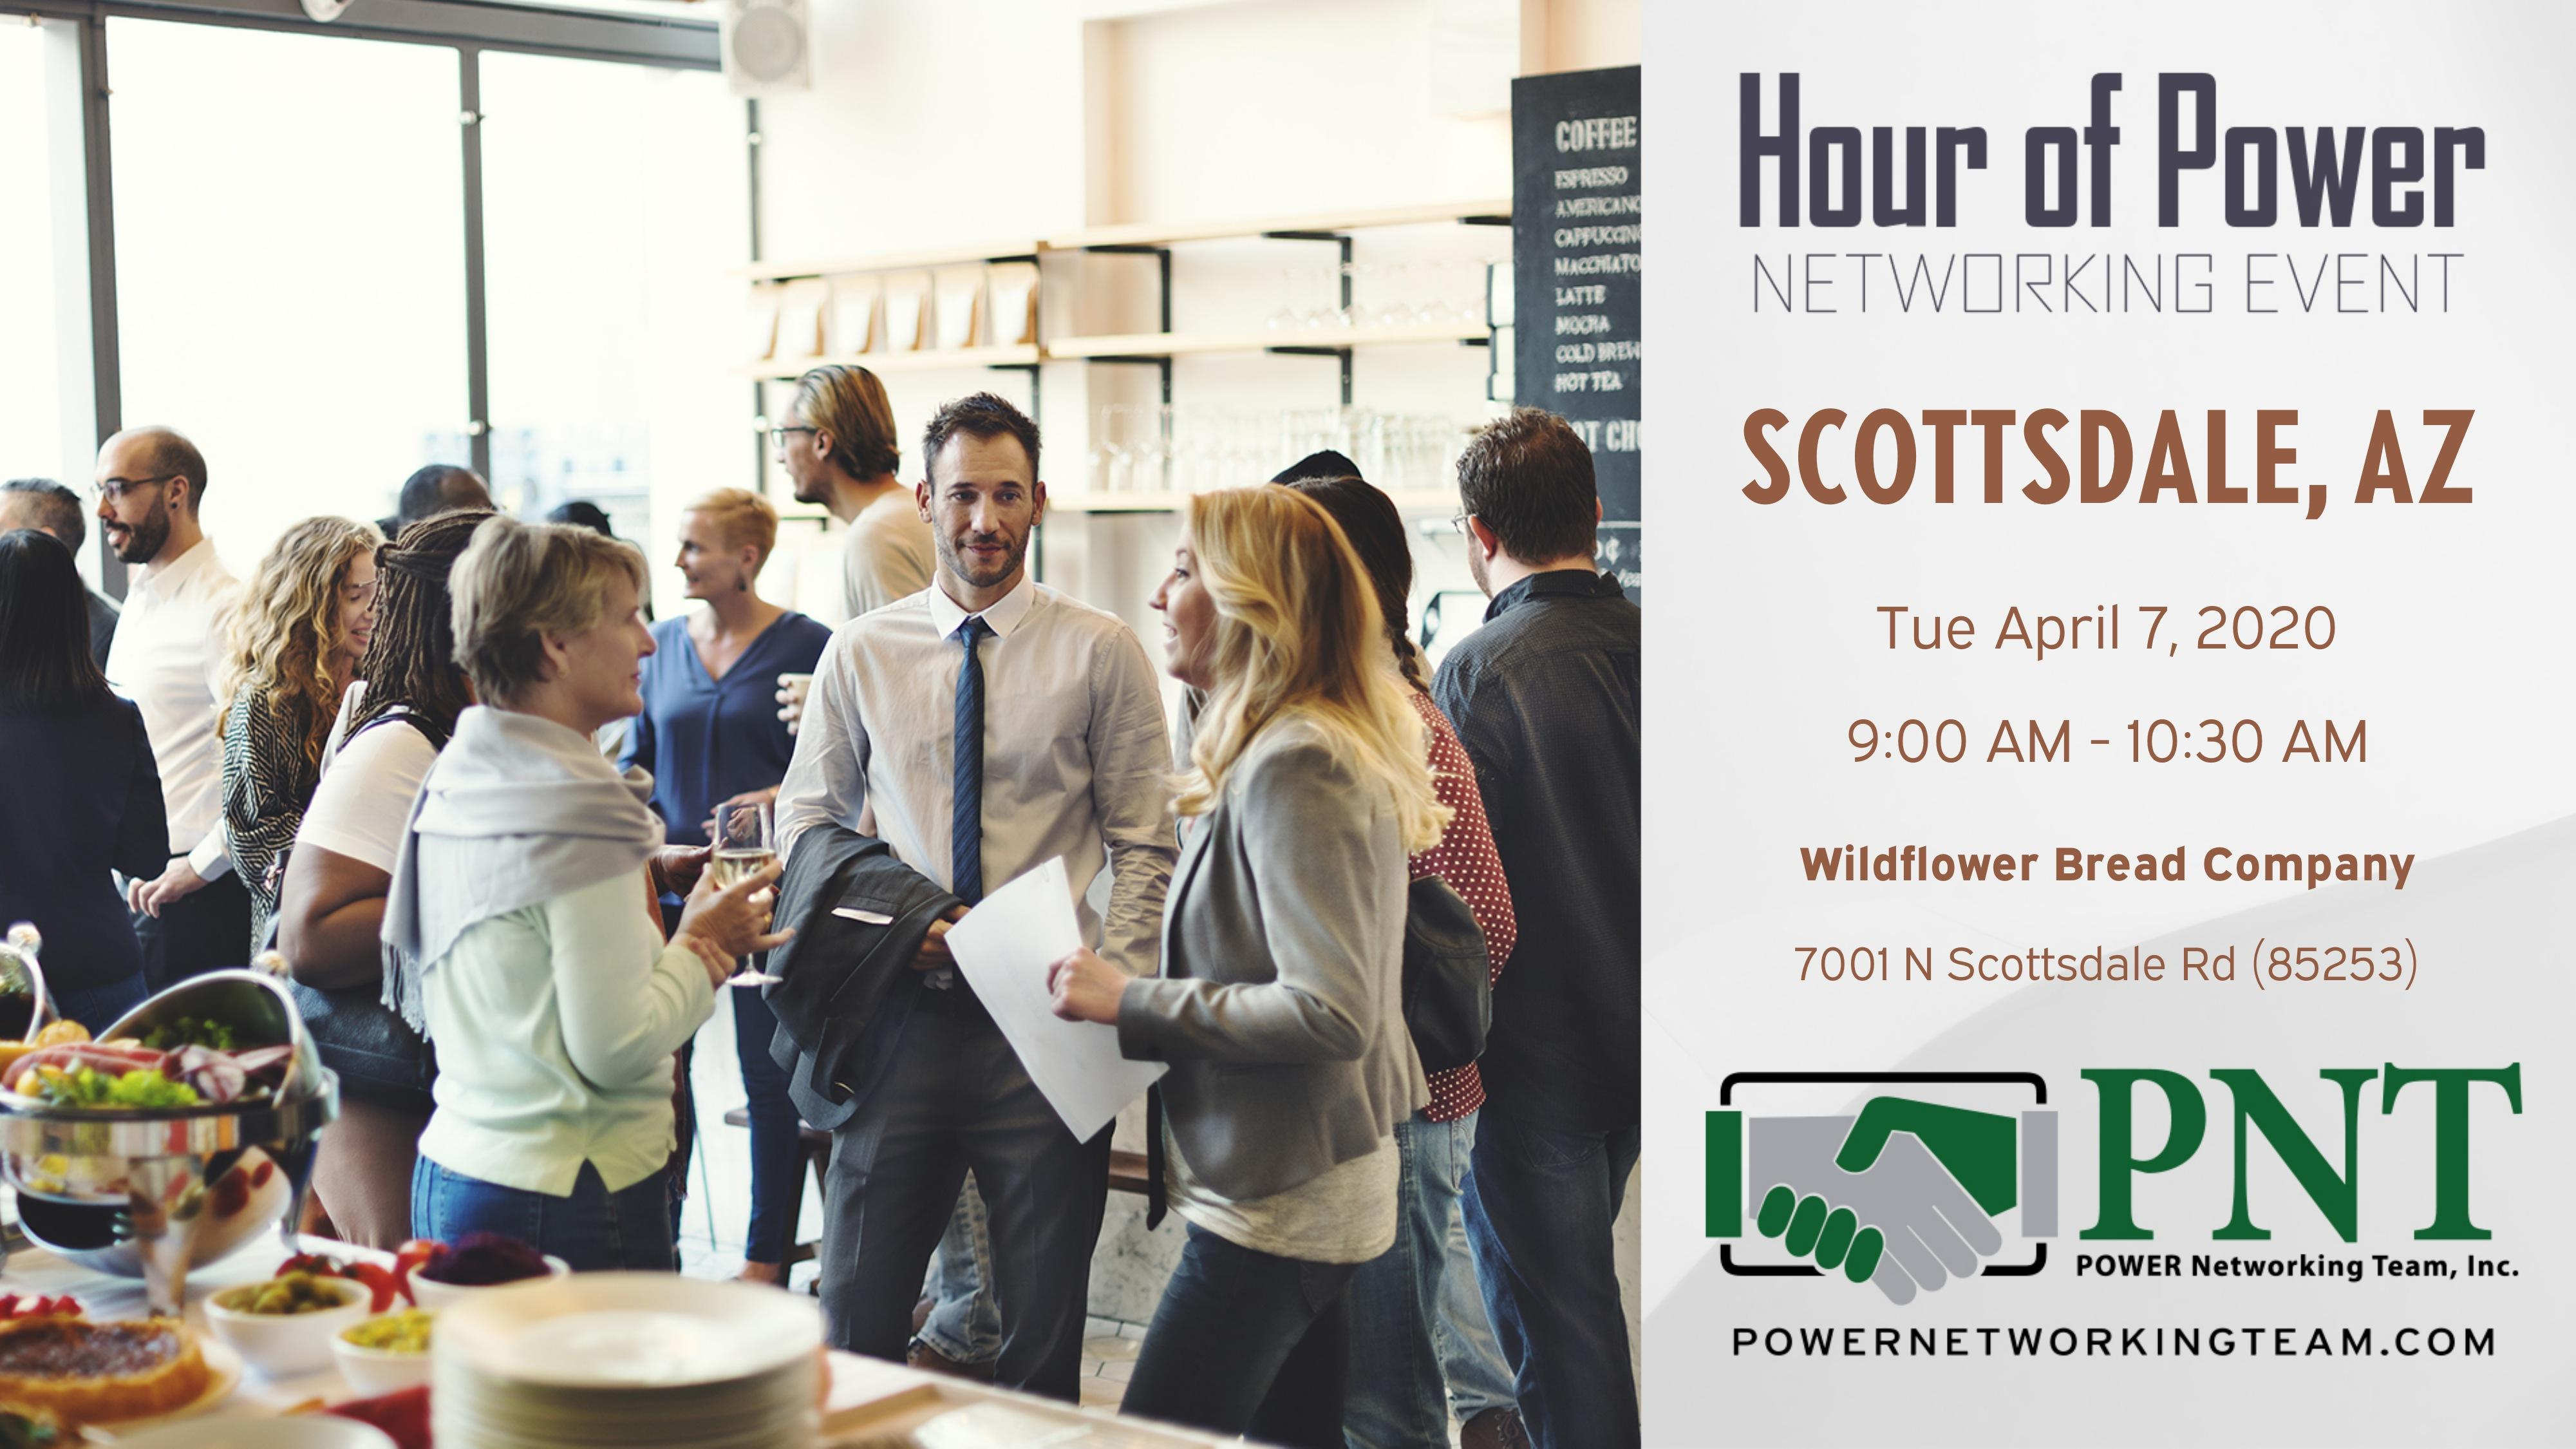 04/07/20 - PNT Scottsdale Central - Hour of Power Networking Event